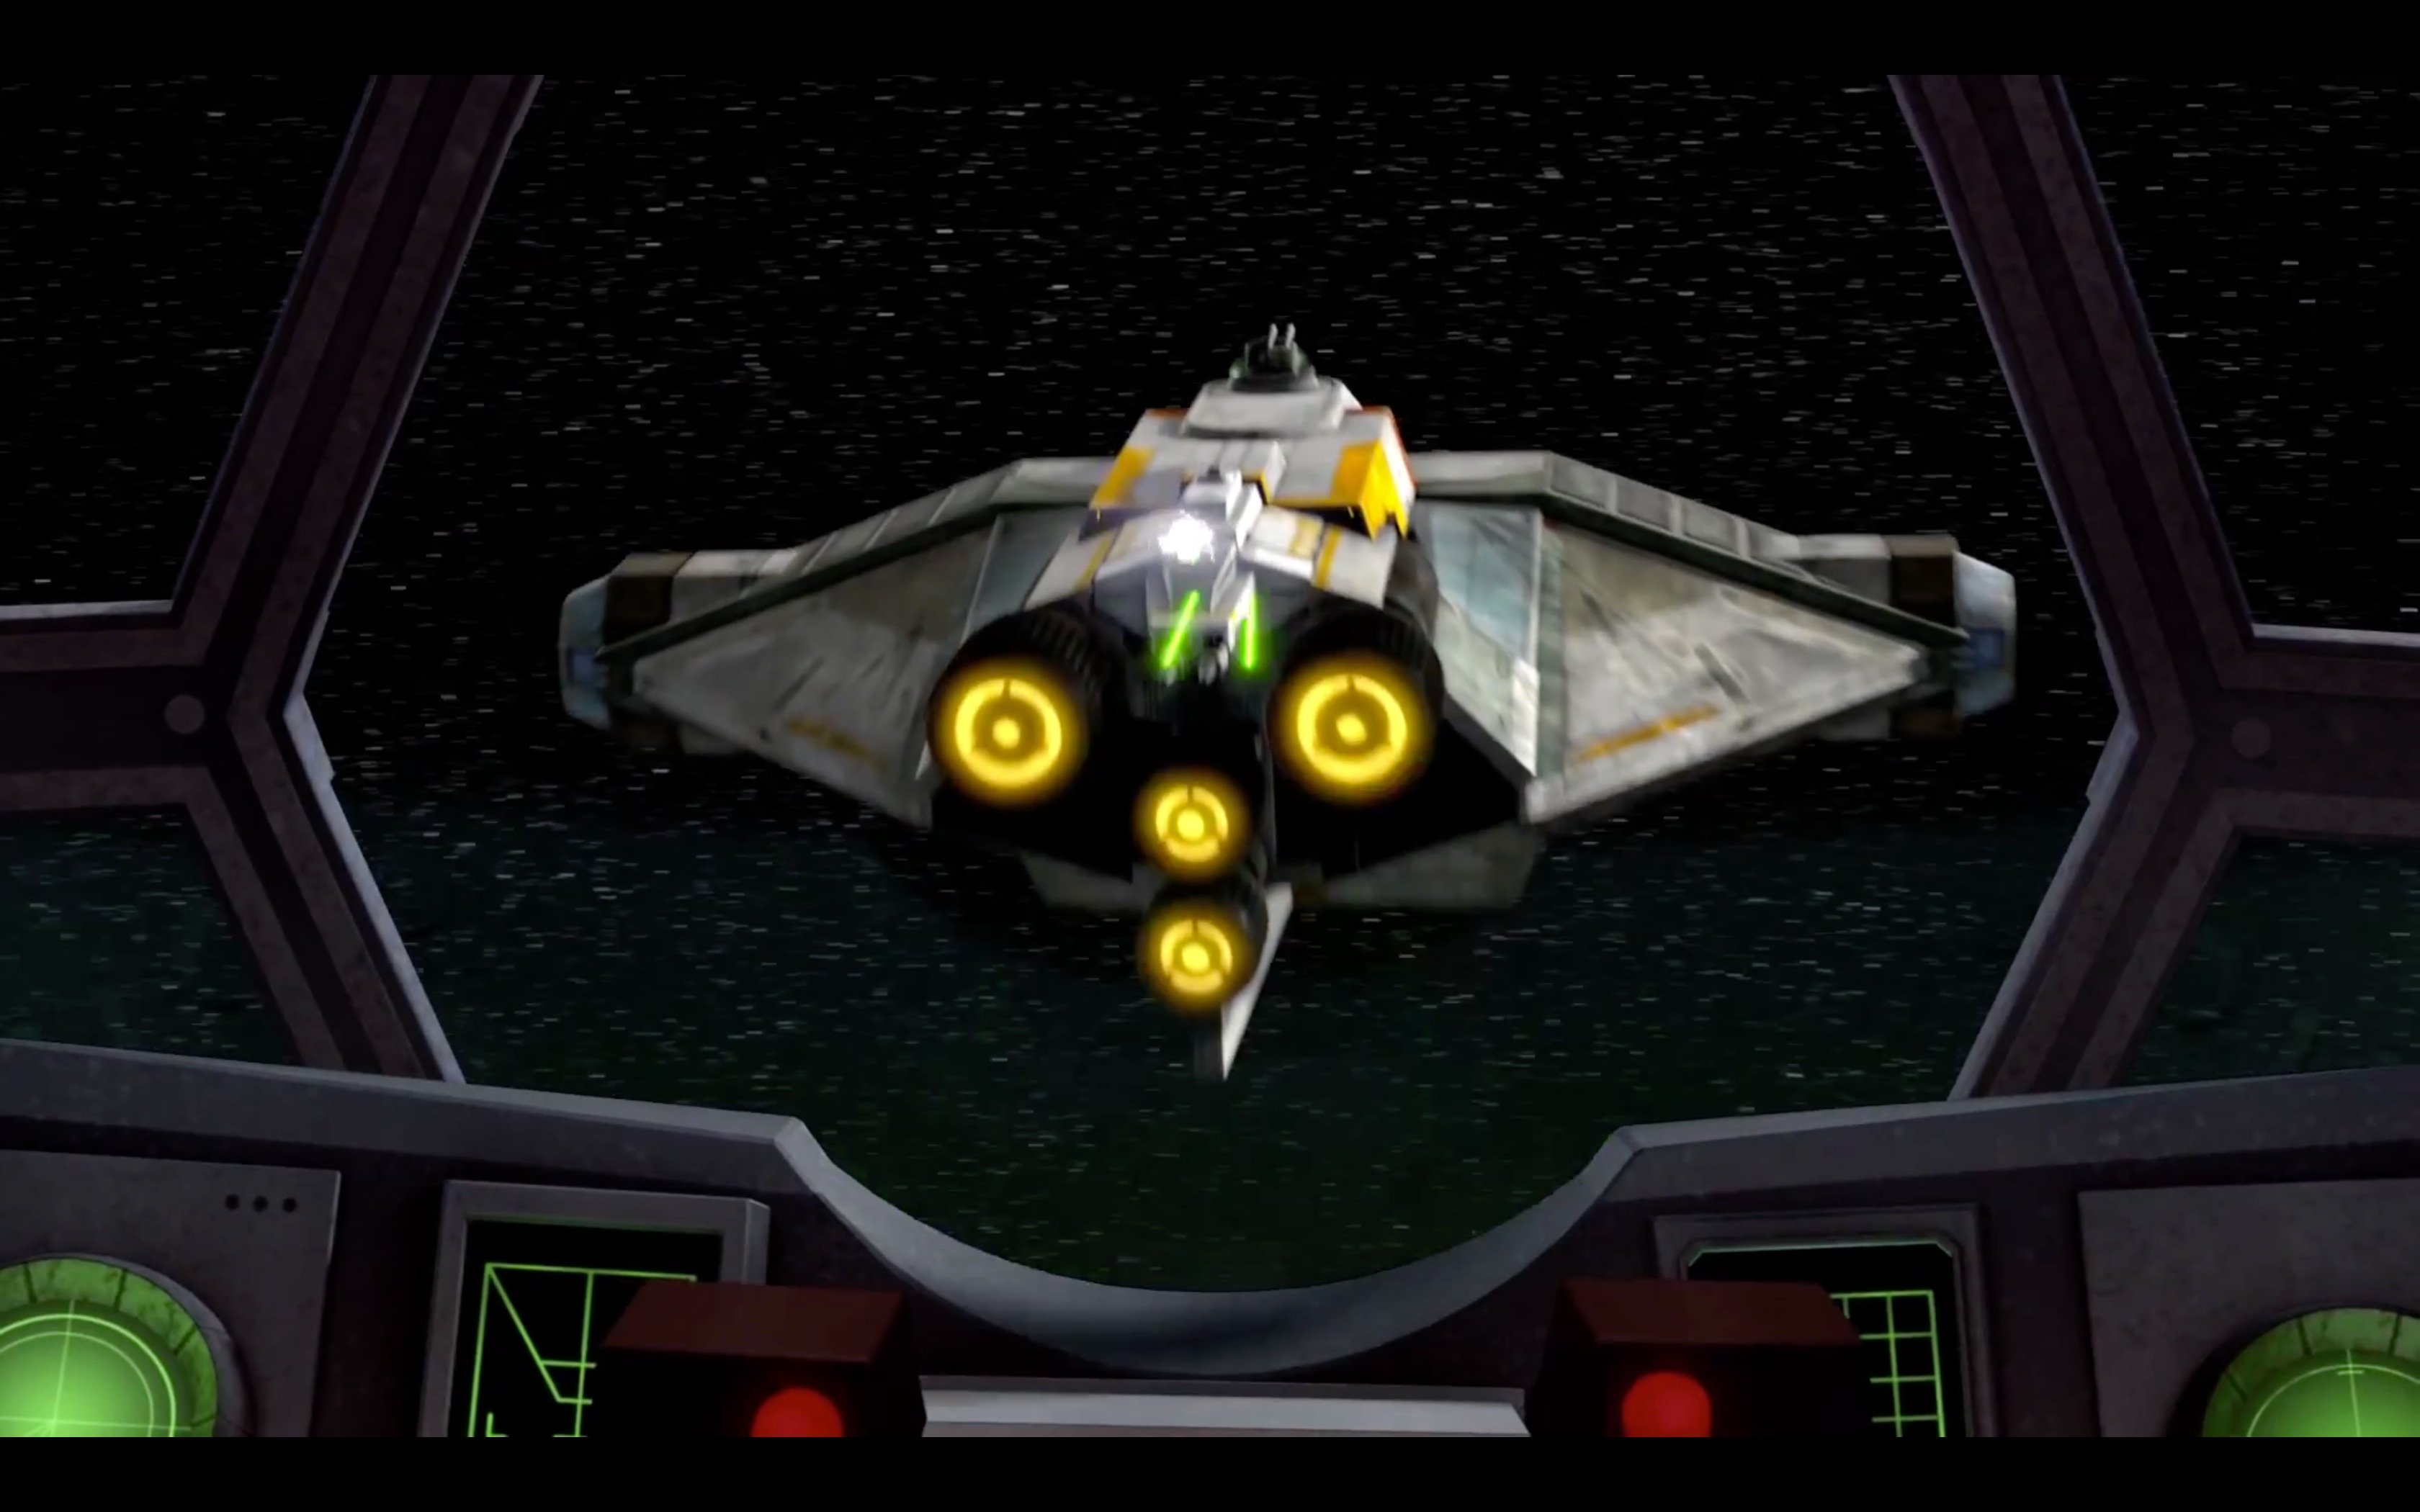 star-wars-rebels-the-machine-in-the-ghost-5